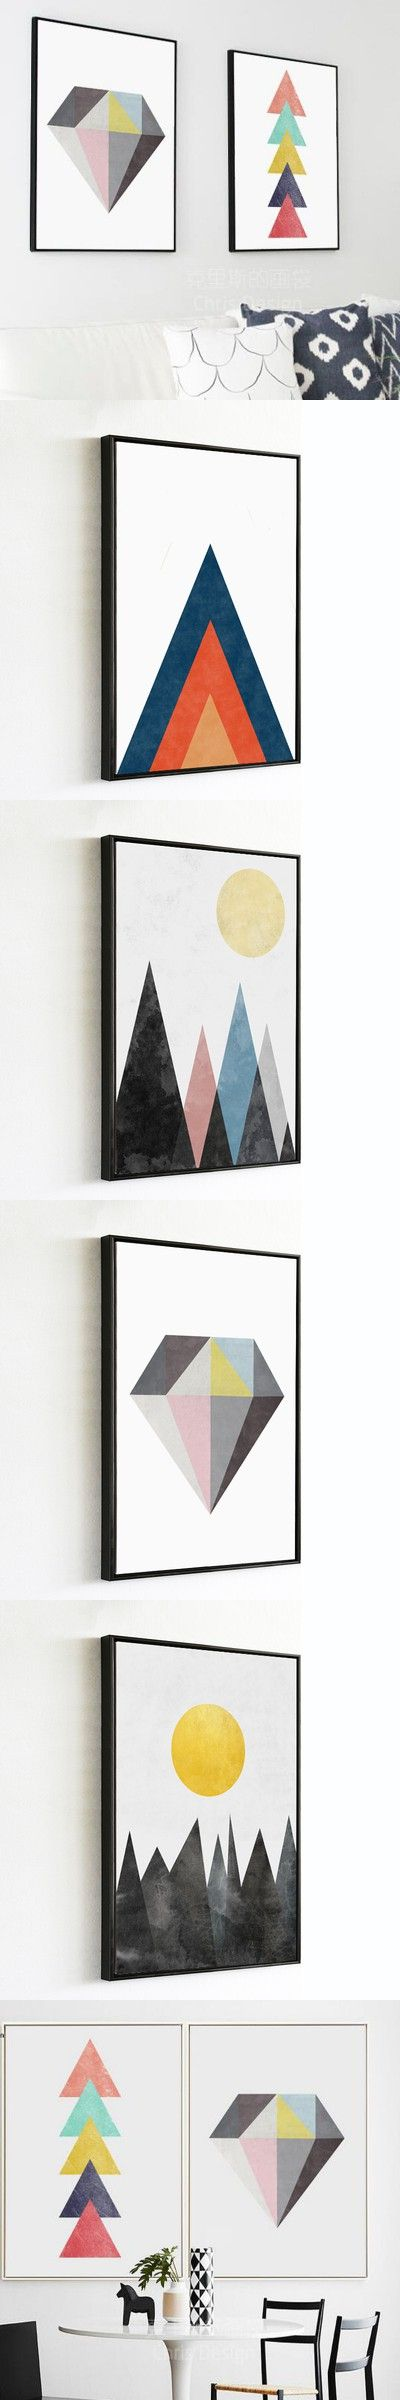 Watercolor Nordic Geometric patterns Art Prints Poster Hipster Wall Picture Canvas Painting Kids Room Home Decor $9.99